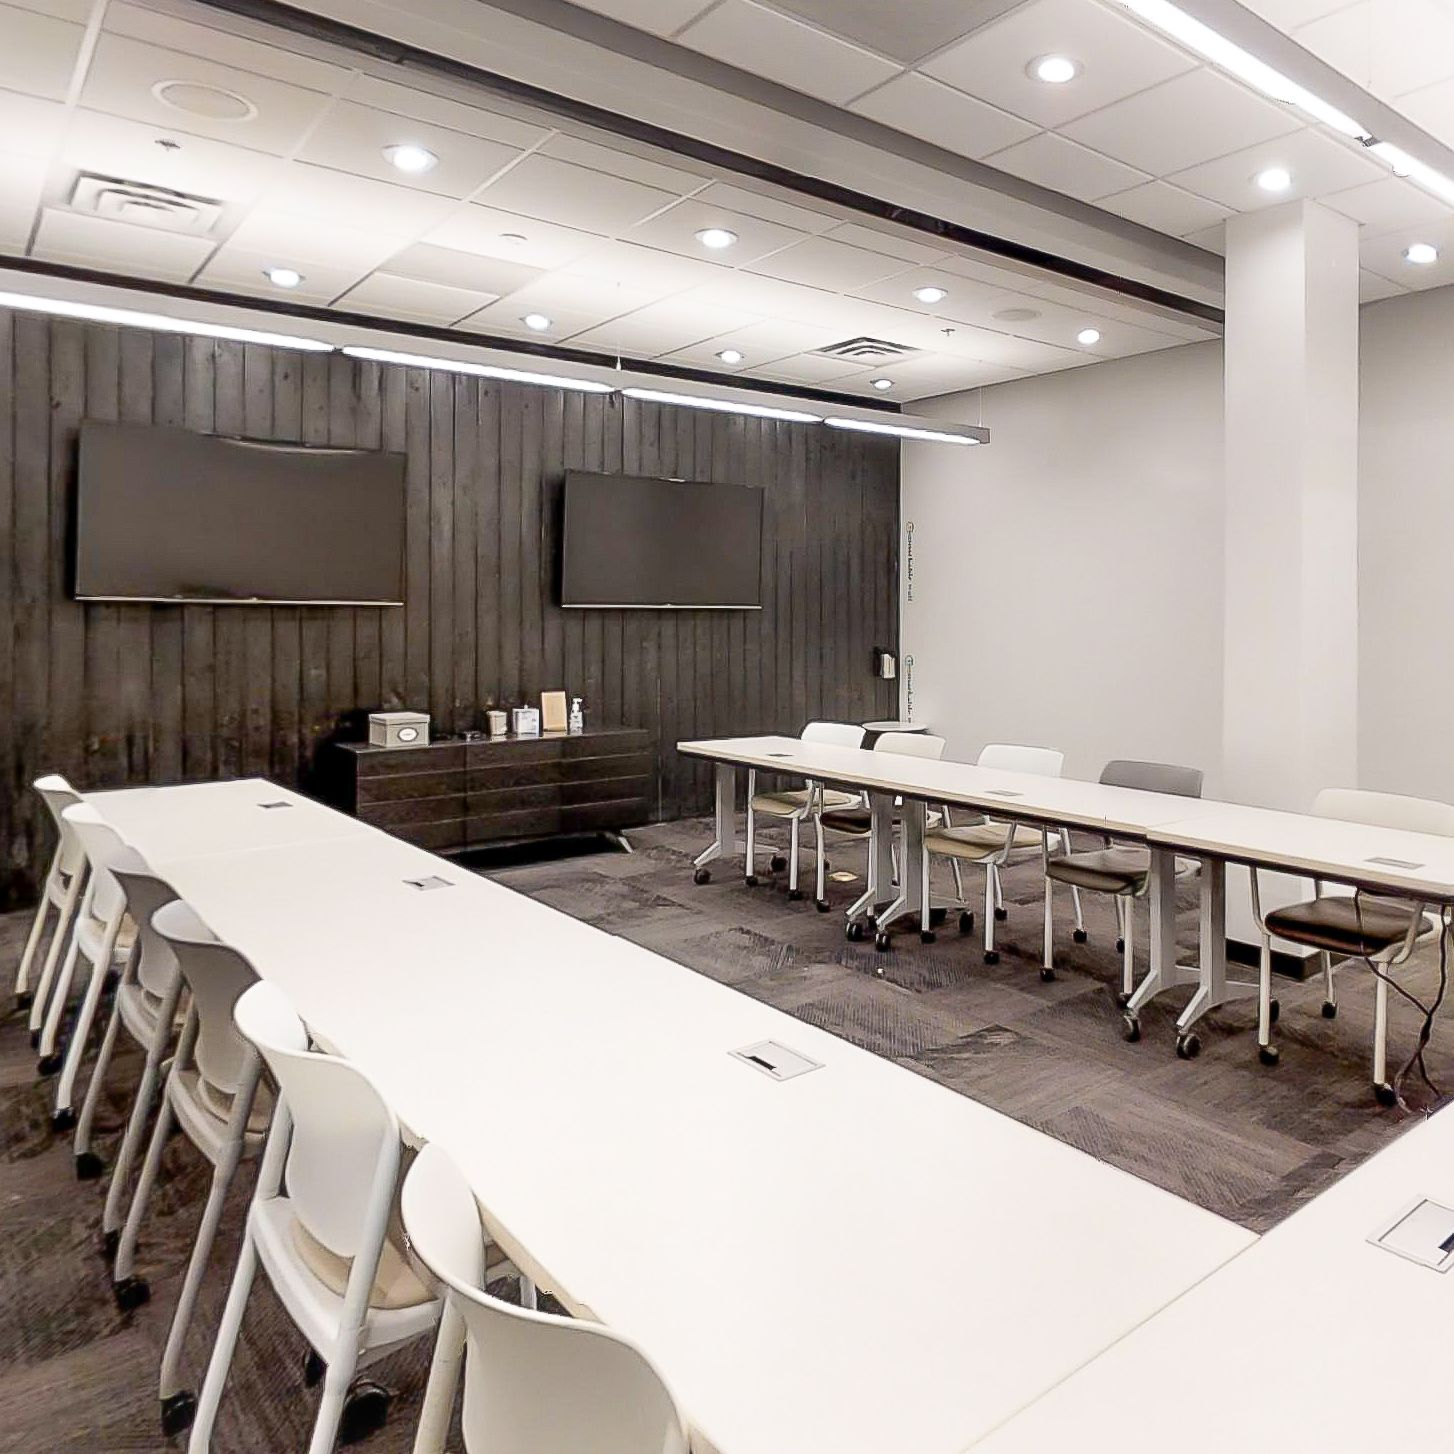 galleria-meeting-rooms-included